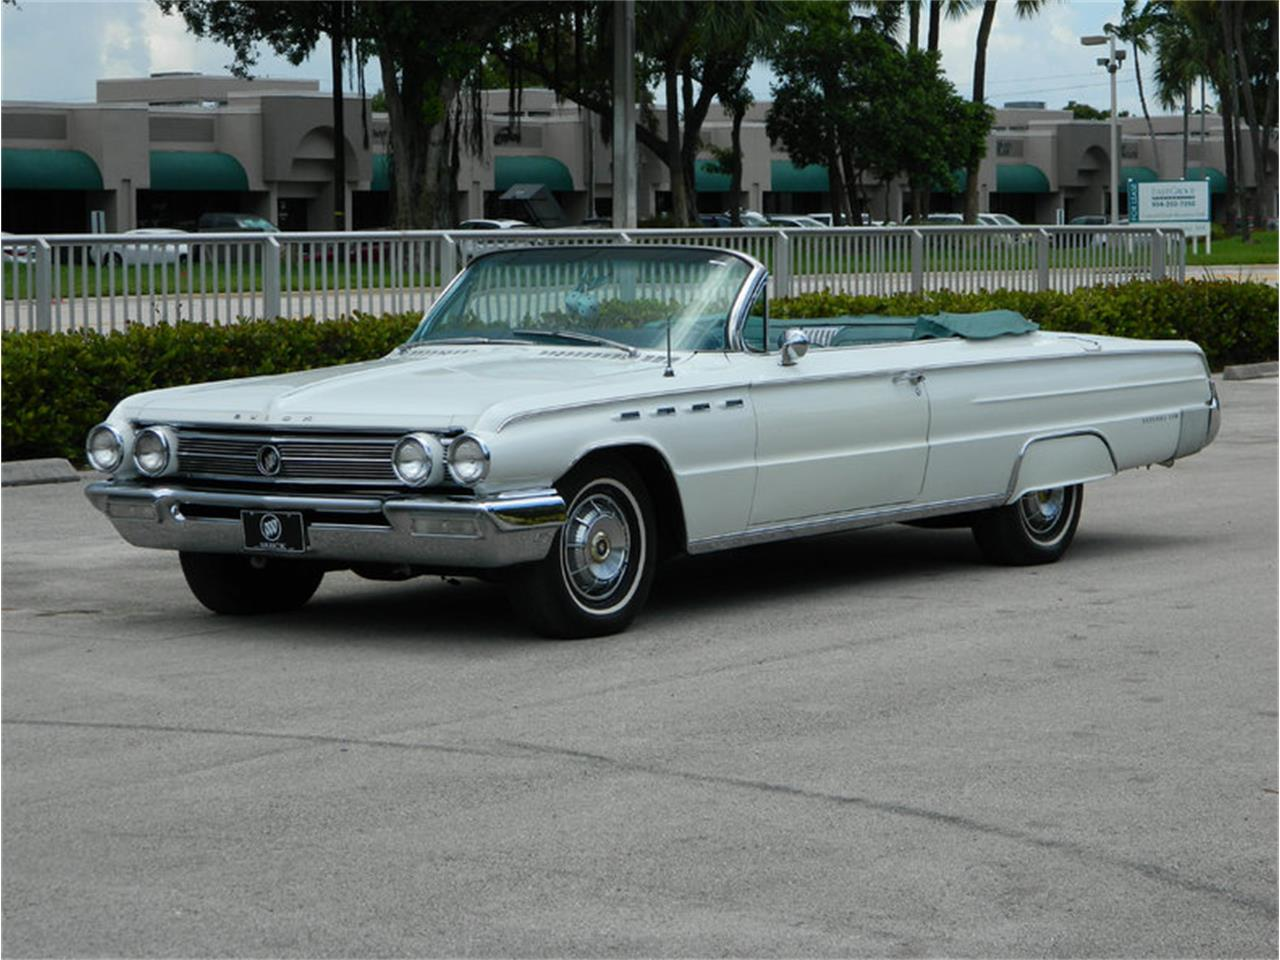 Large Picture of '62 Buick Electra 225 located in Fort Lauderdale Florida - M8SN